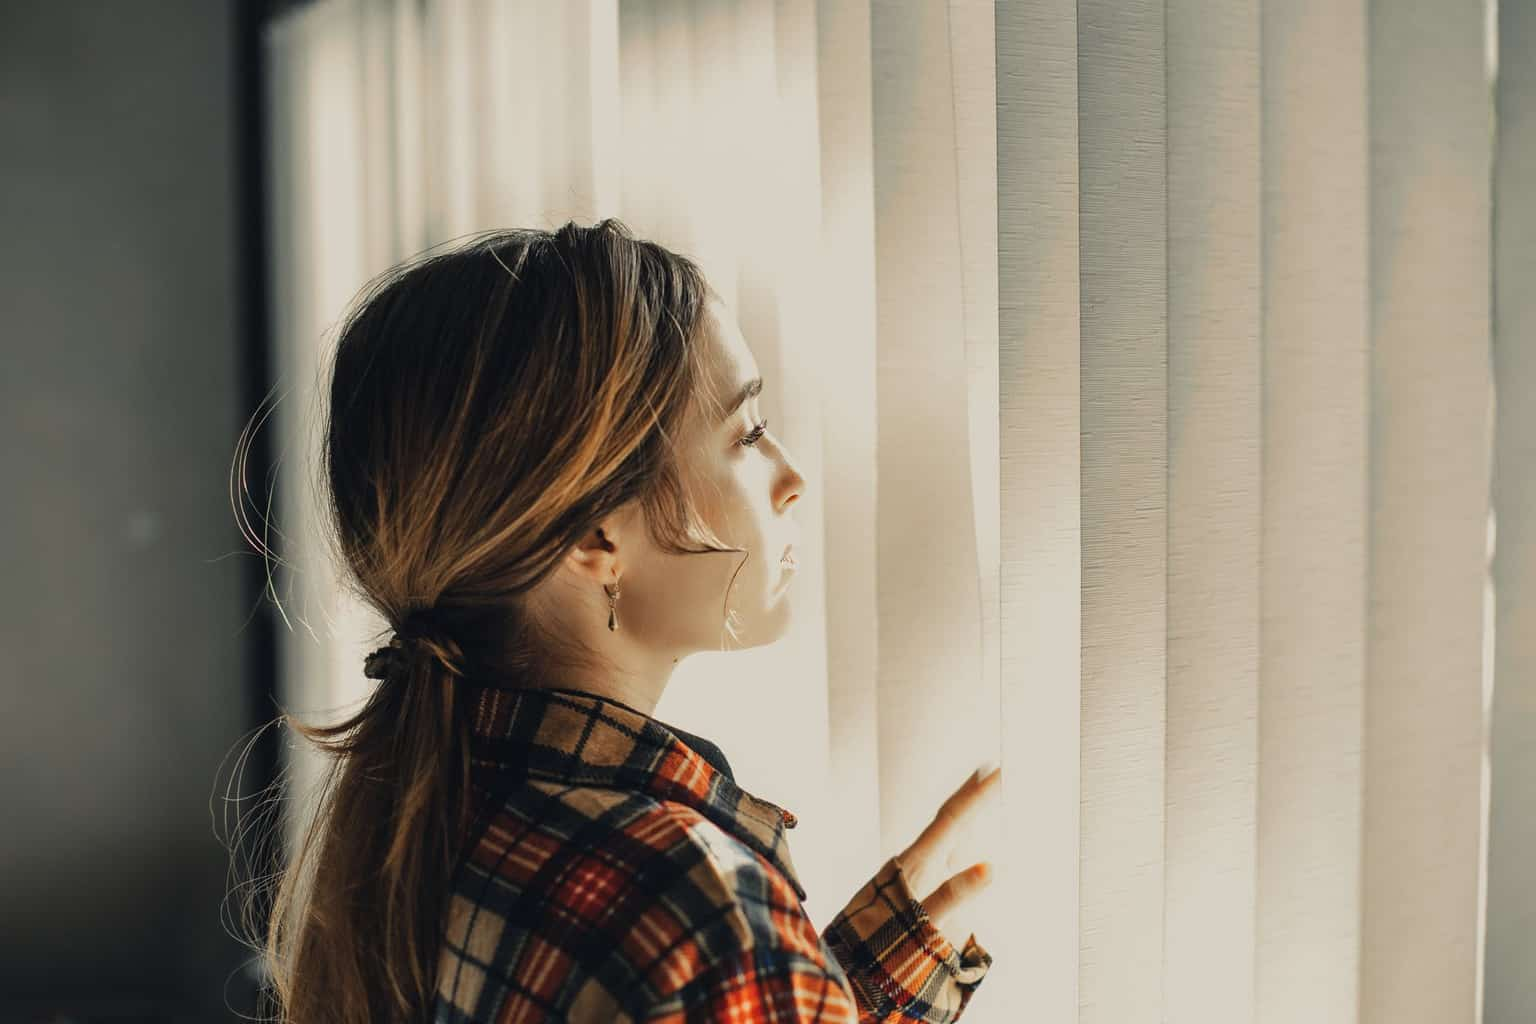 thoughtful young woman looking through blinds of window in daylight